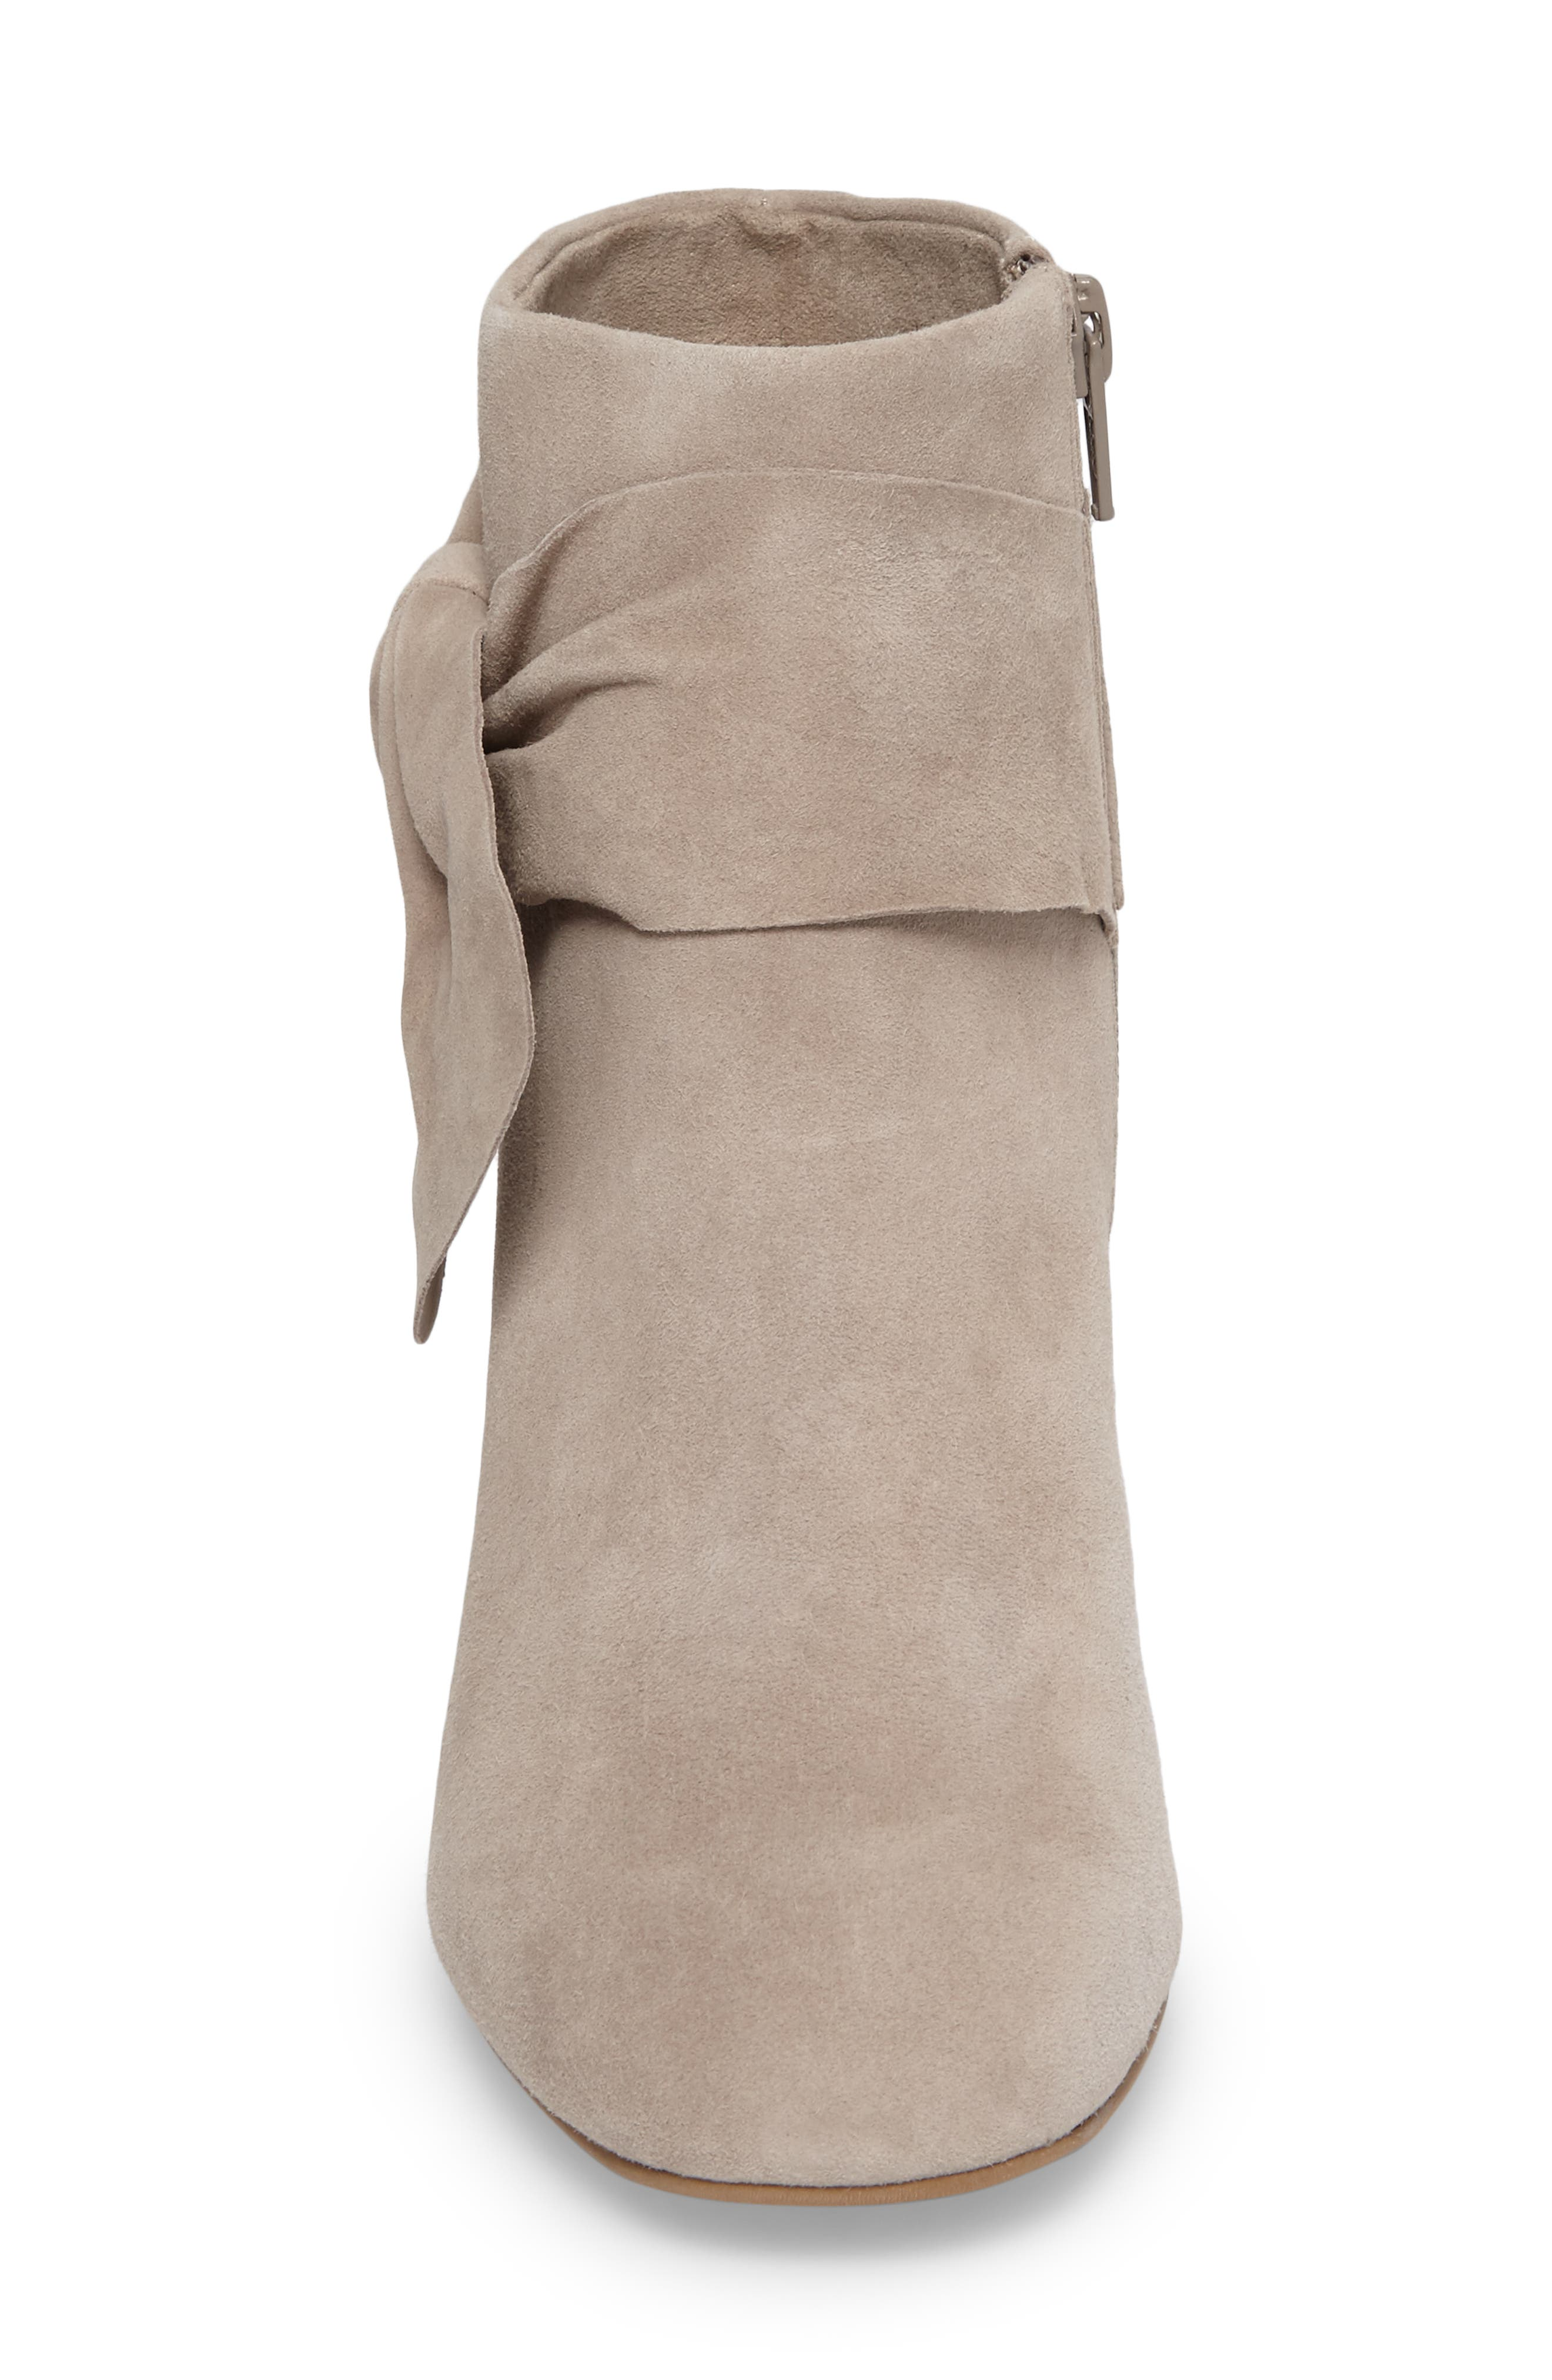 Catwalk Bootie,                             Alternate thumbnail 4, color,                             Taupe Suede